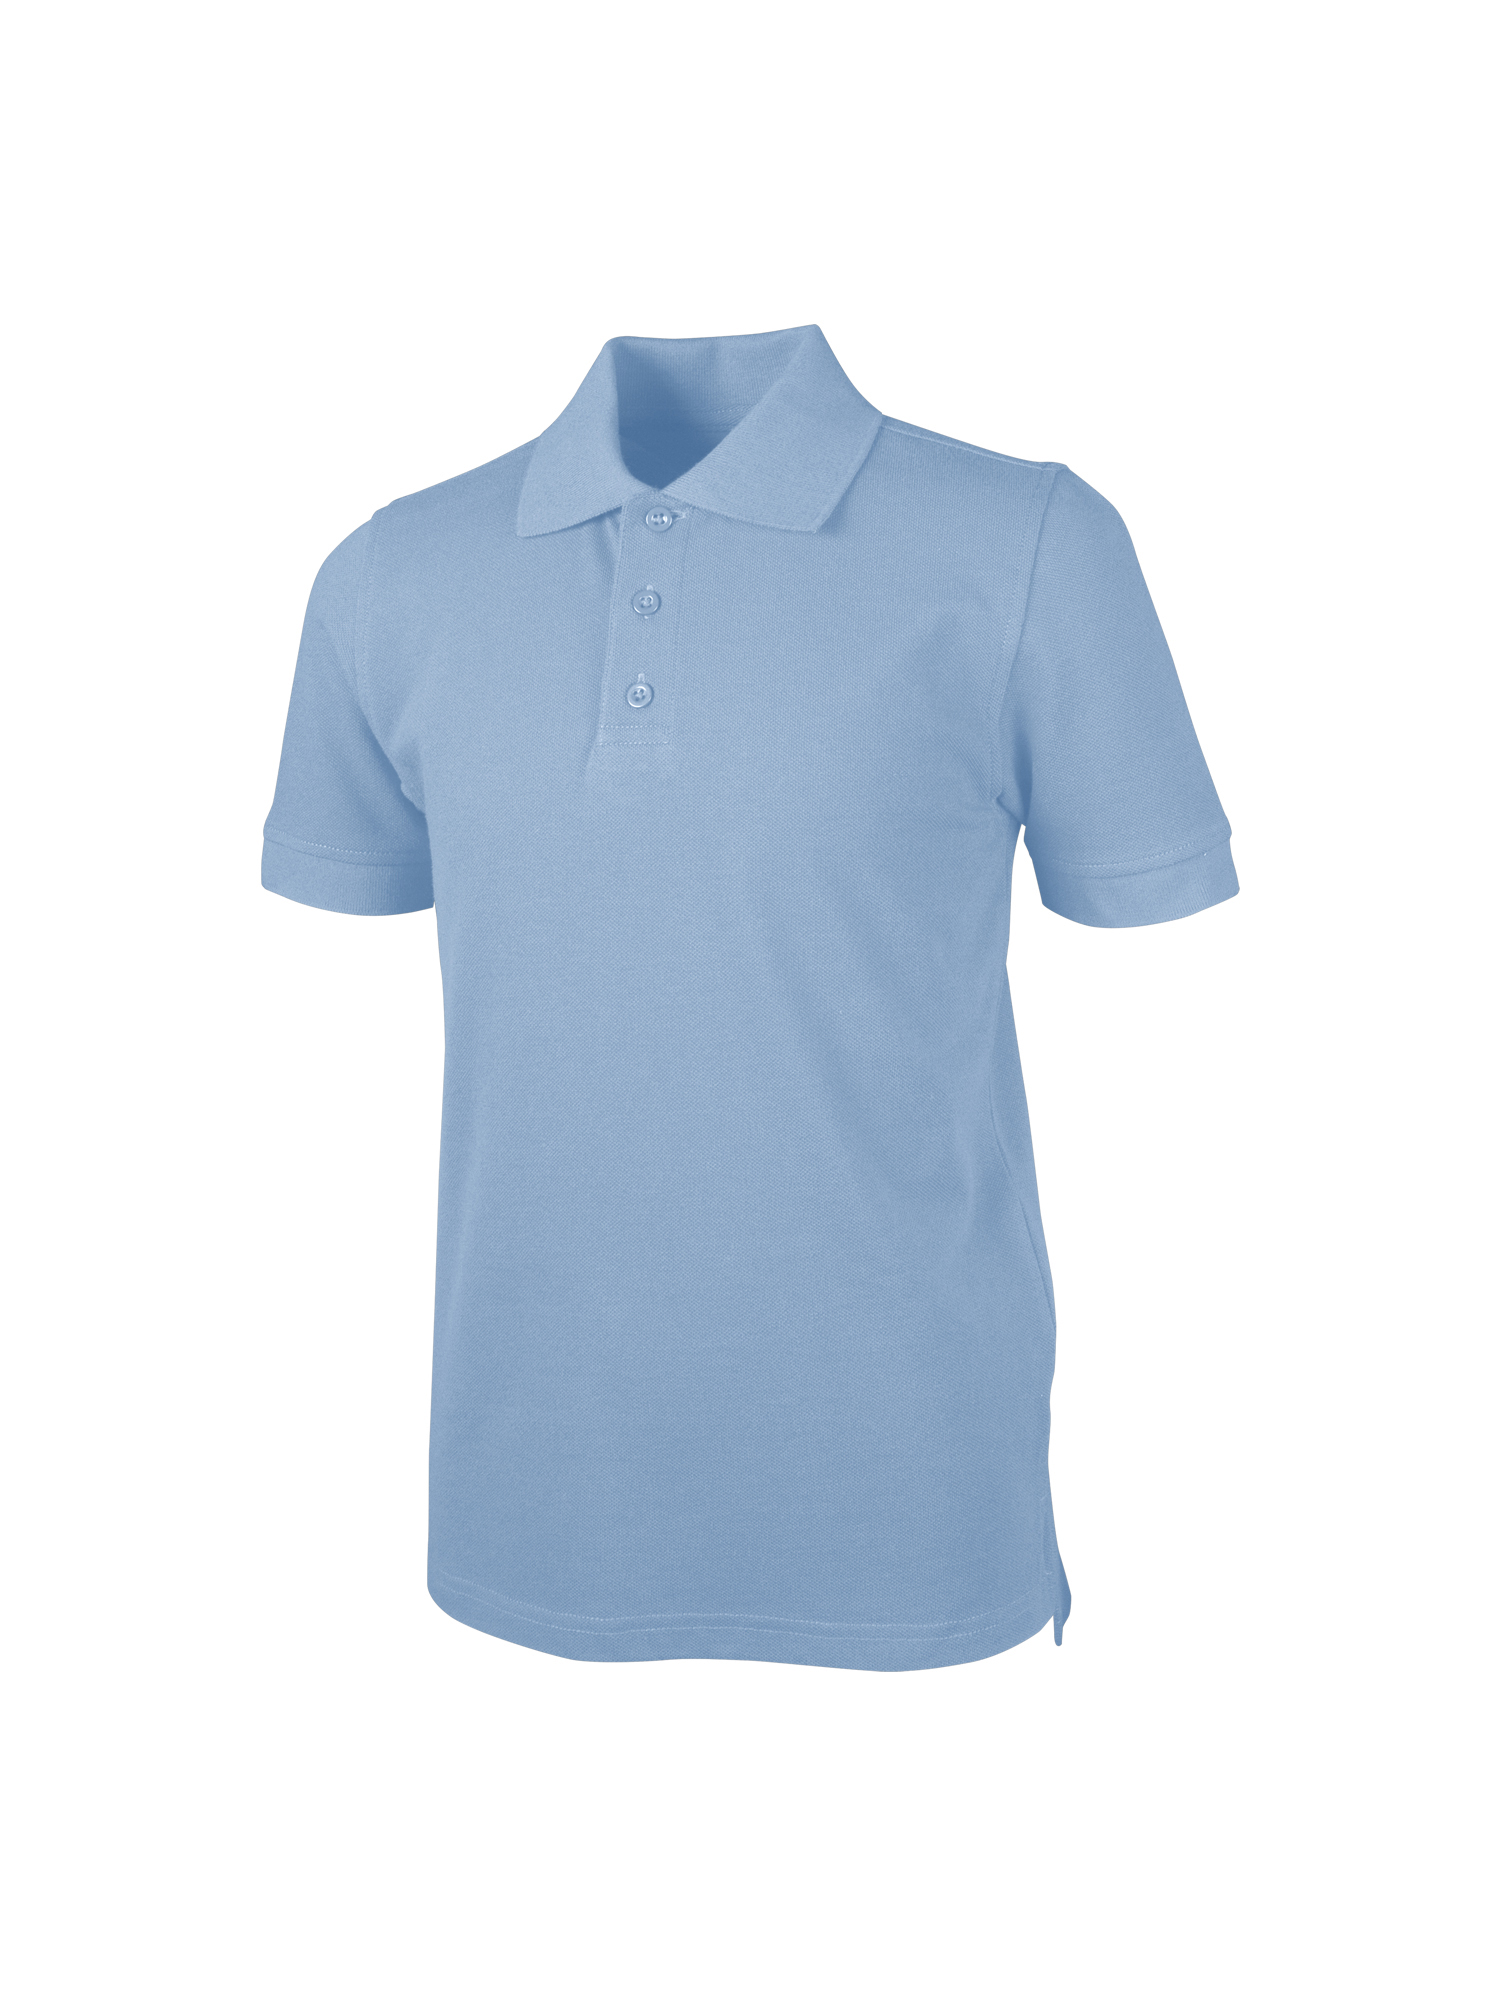 REAL SCHOOL Boys Short Sleeve Pique Polo Shirt